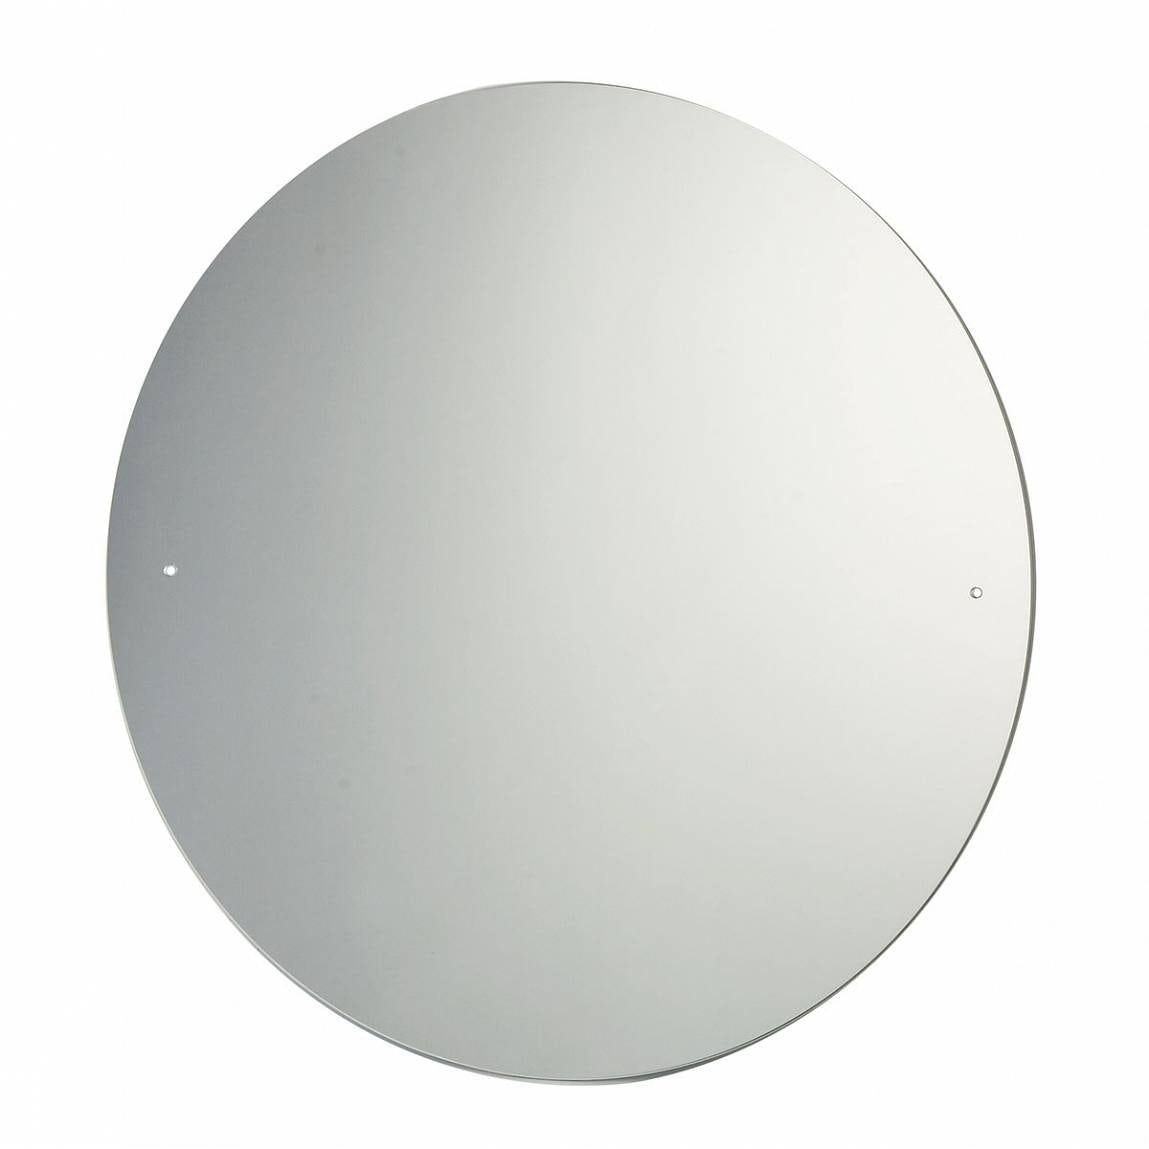 Circular Bevelled Edge Drilled Mirror Diameter 60cm